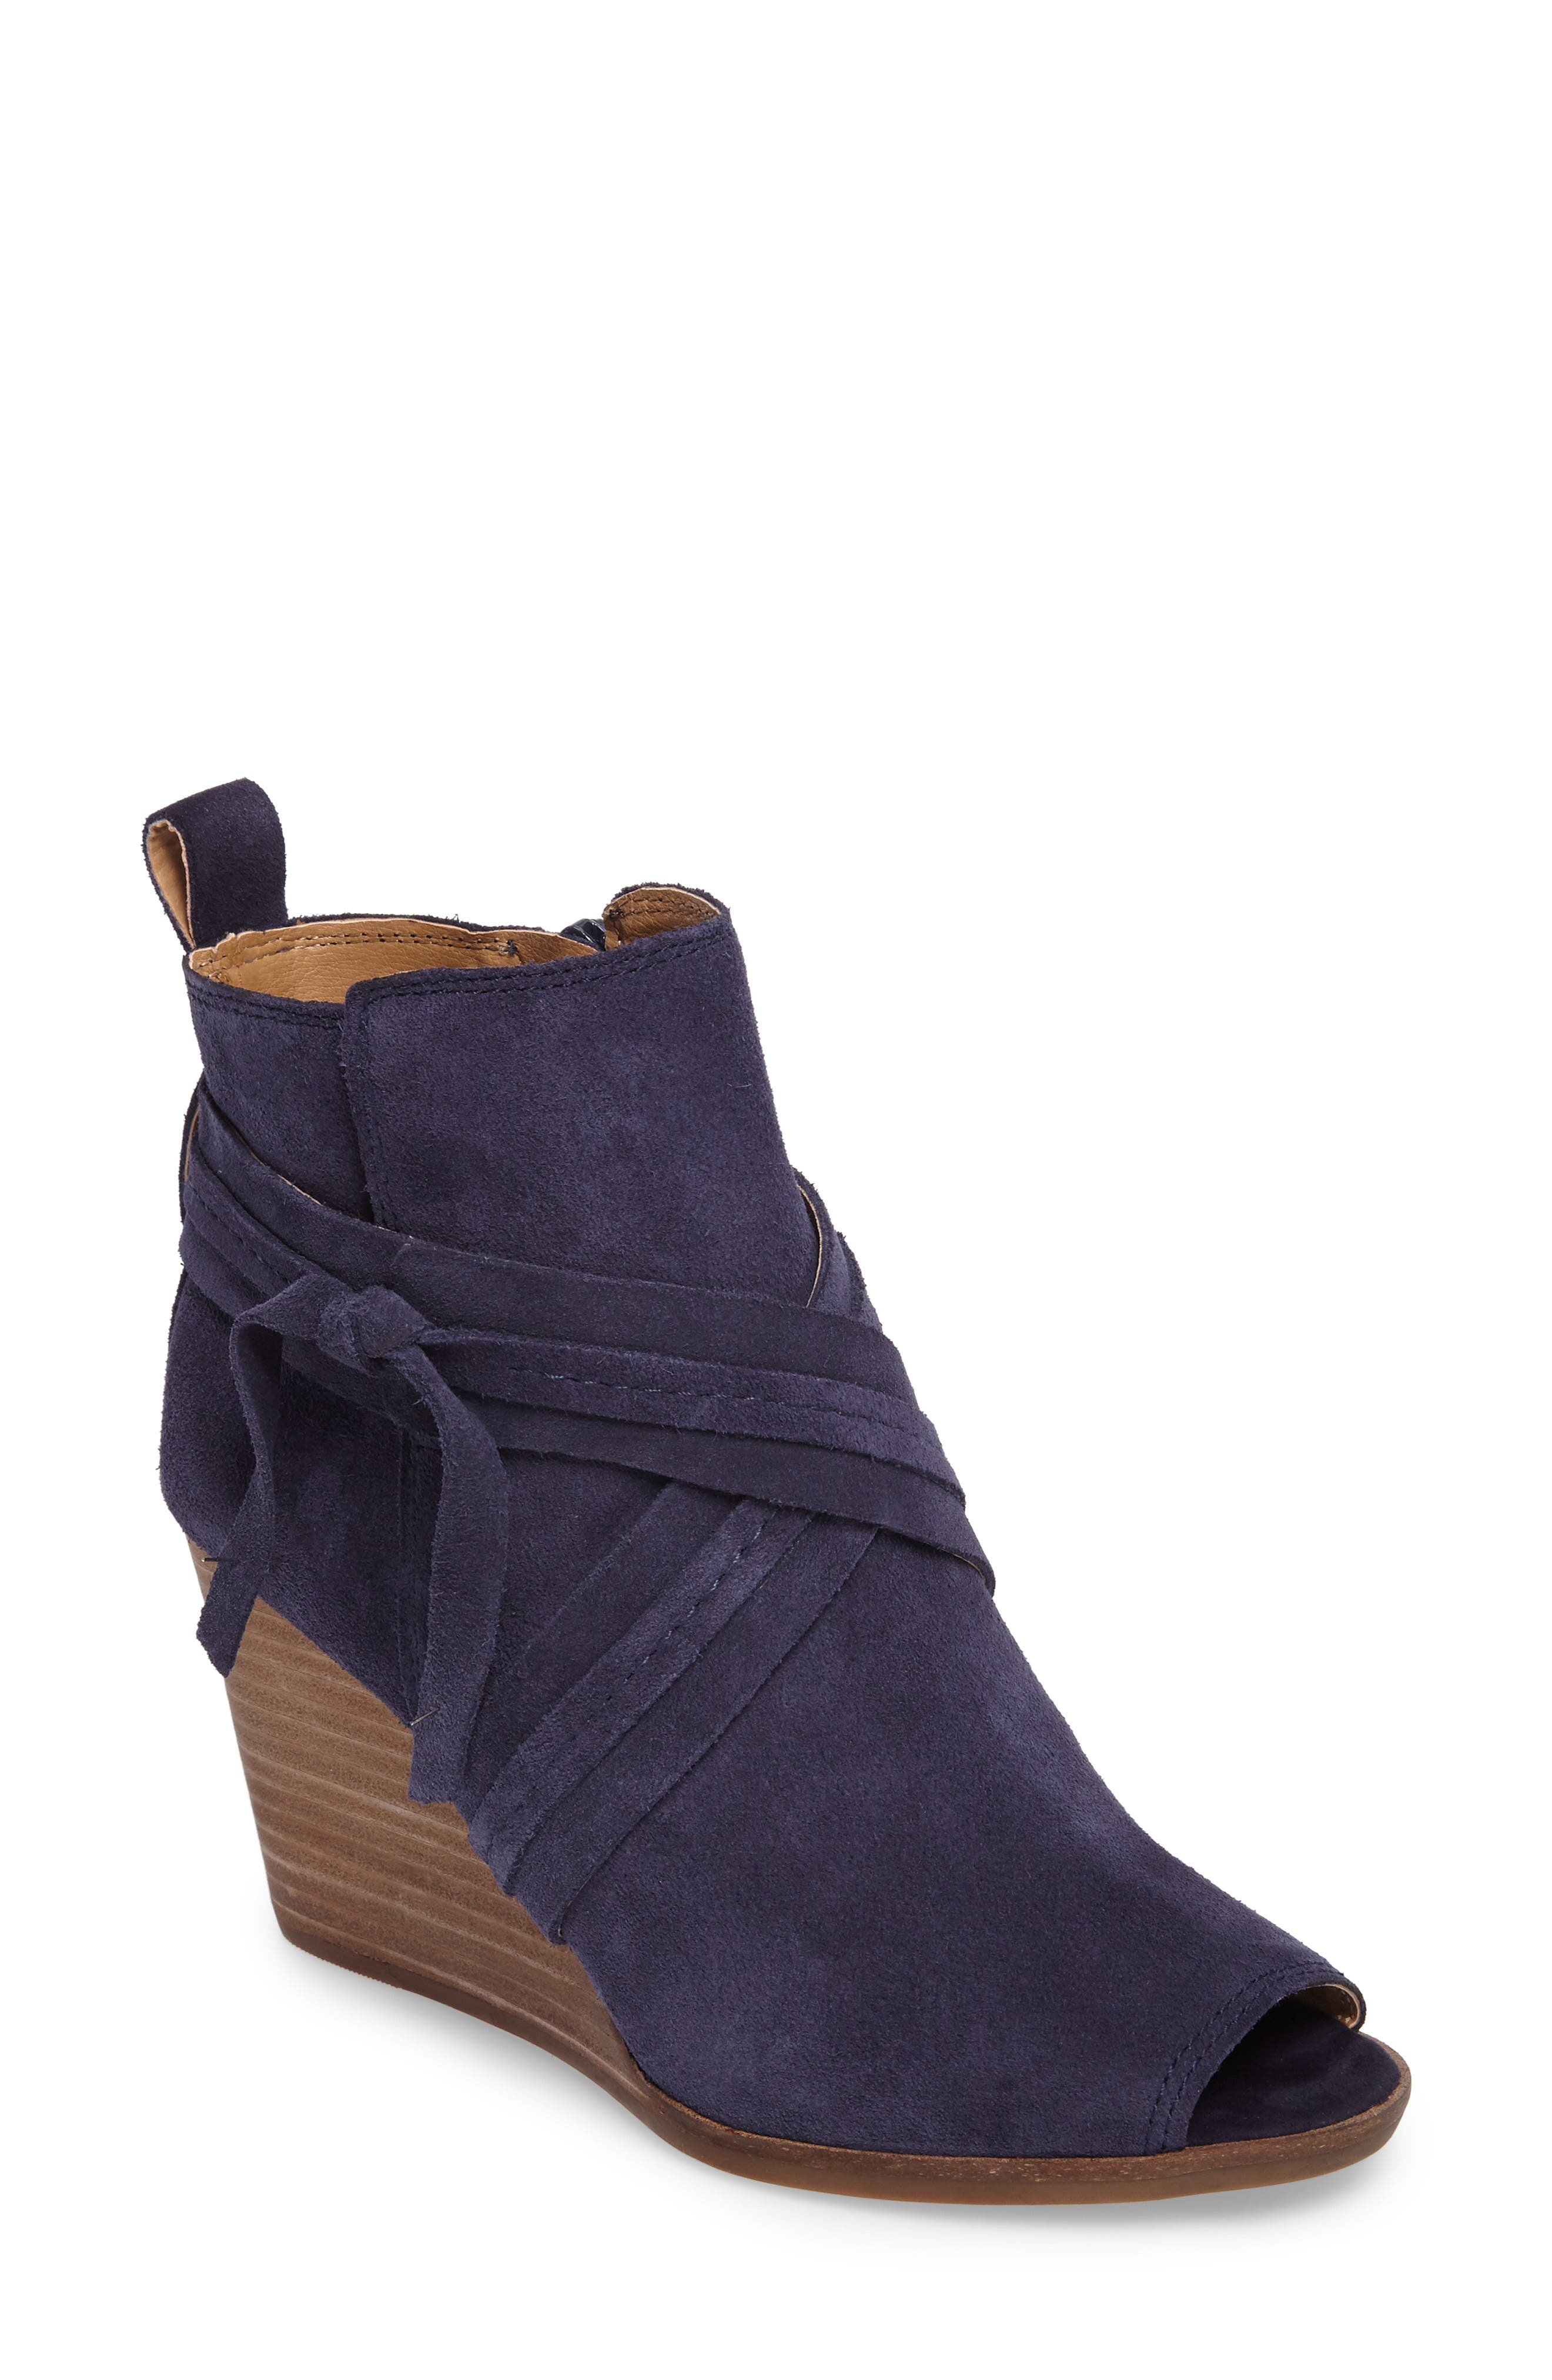 Alternate Image 1 Selected - Lucky Brand Udom Wedge Bootie (Women)